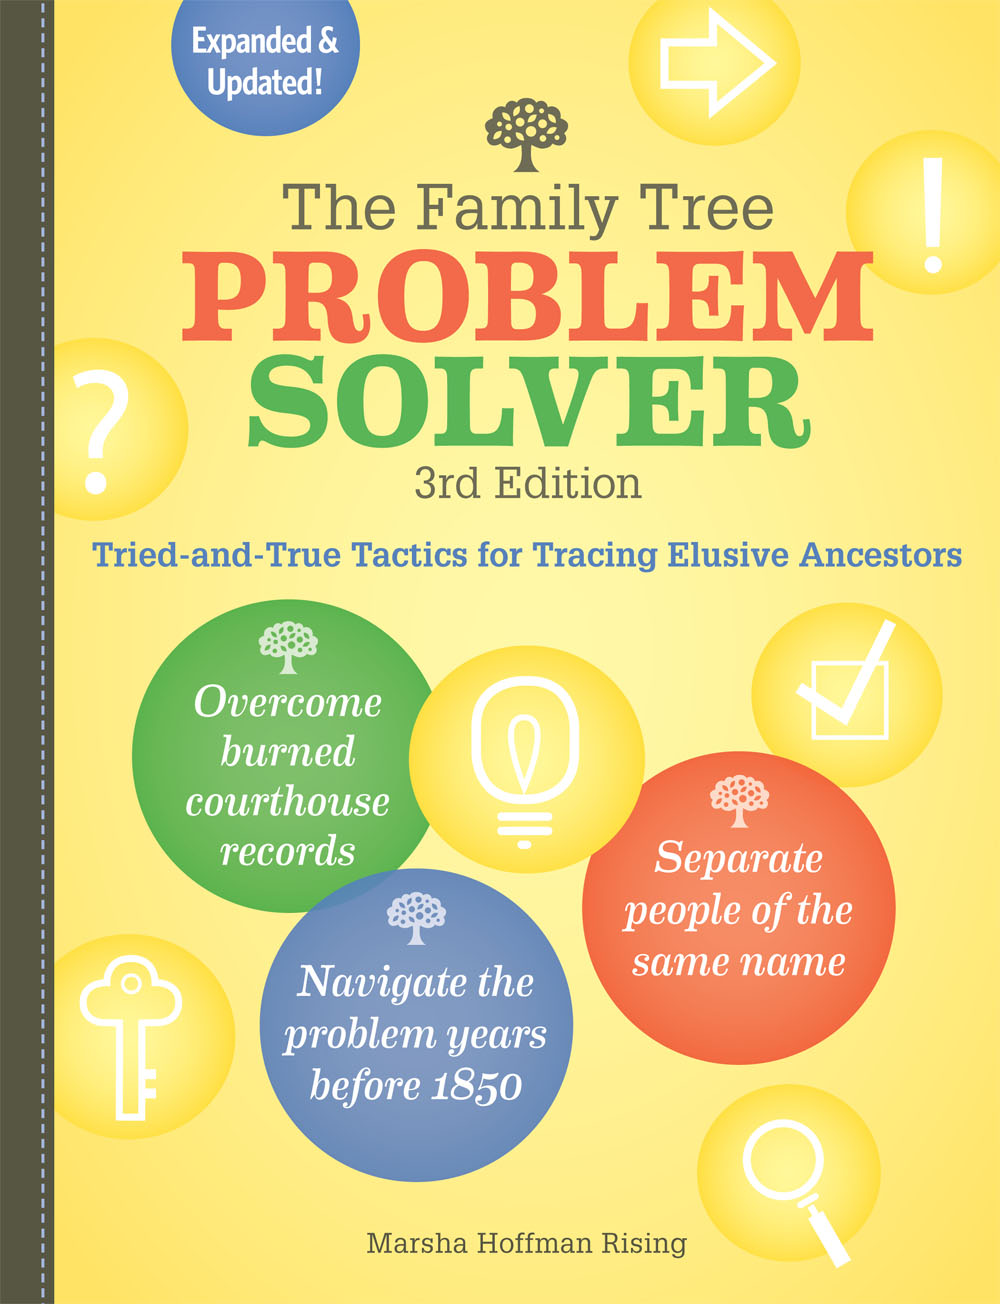 The Family Tree Problem Solver offers practical solutions for genealogy's toughest problems.